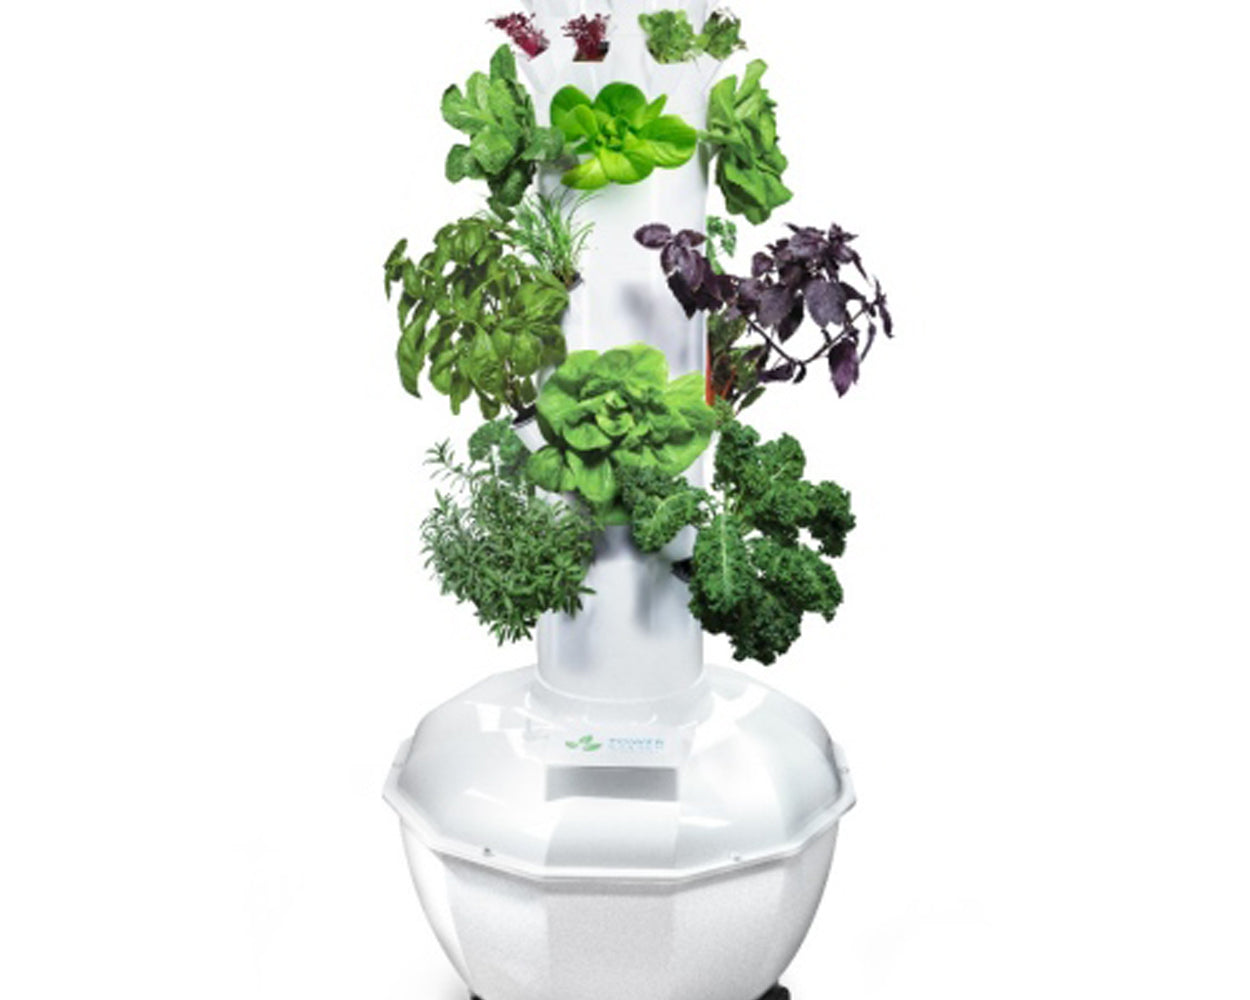 Tower Garden HOME Growing System (No Lights) | $55.83 per month for 12 months